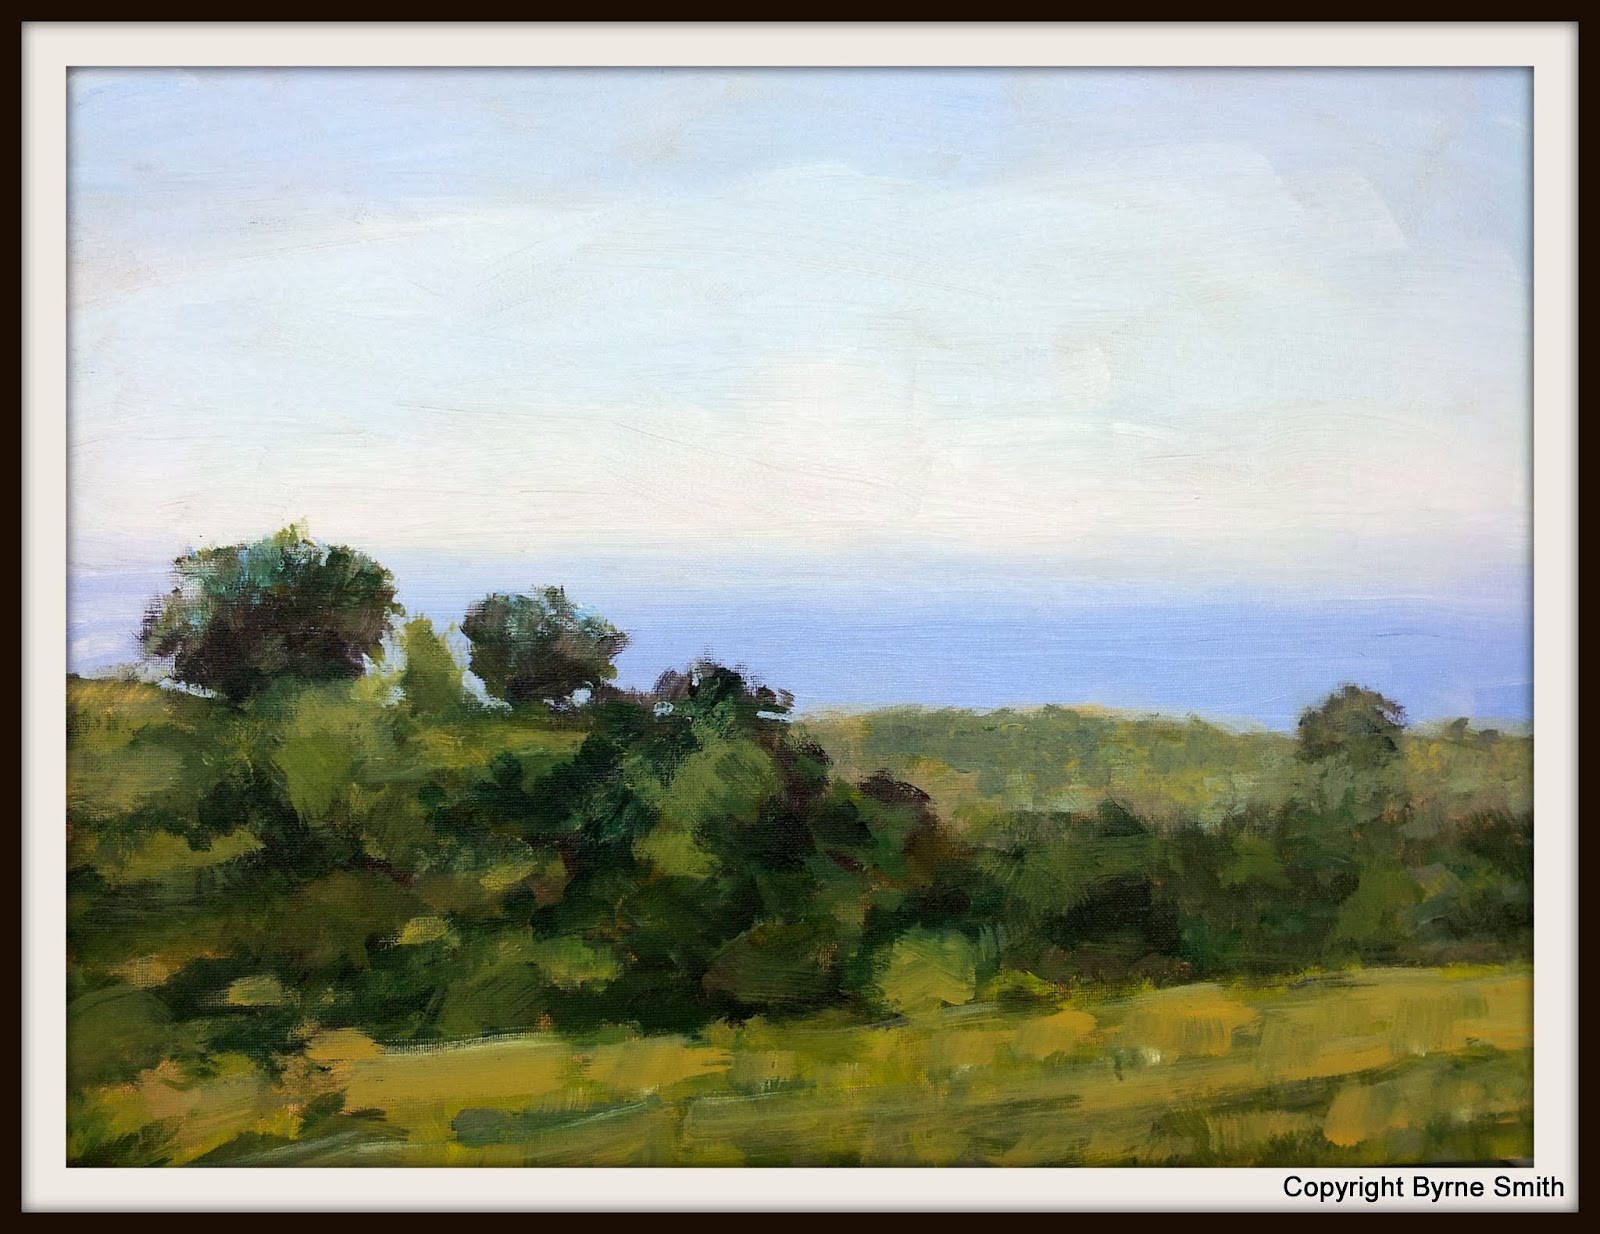 The Painting Life How To Paint A Good Landscape